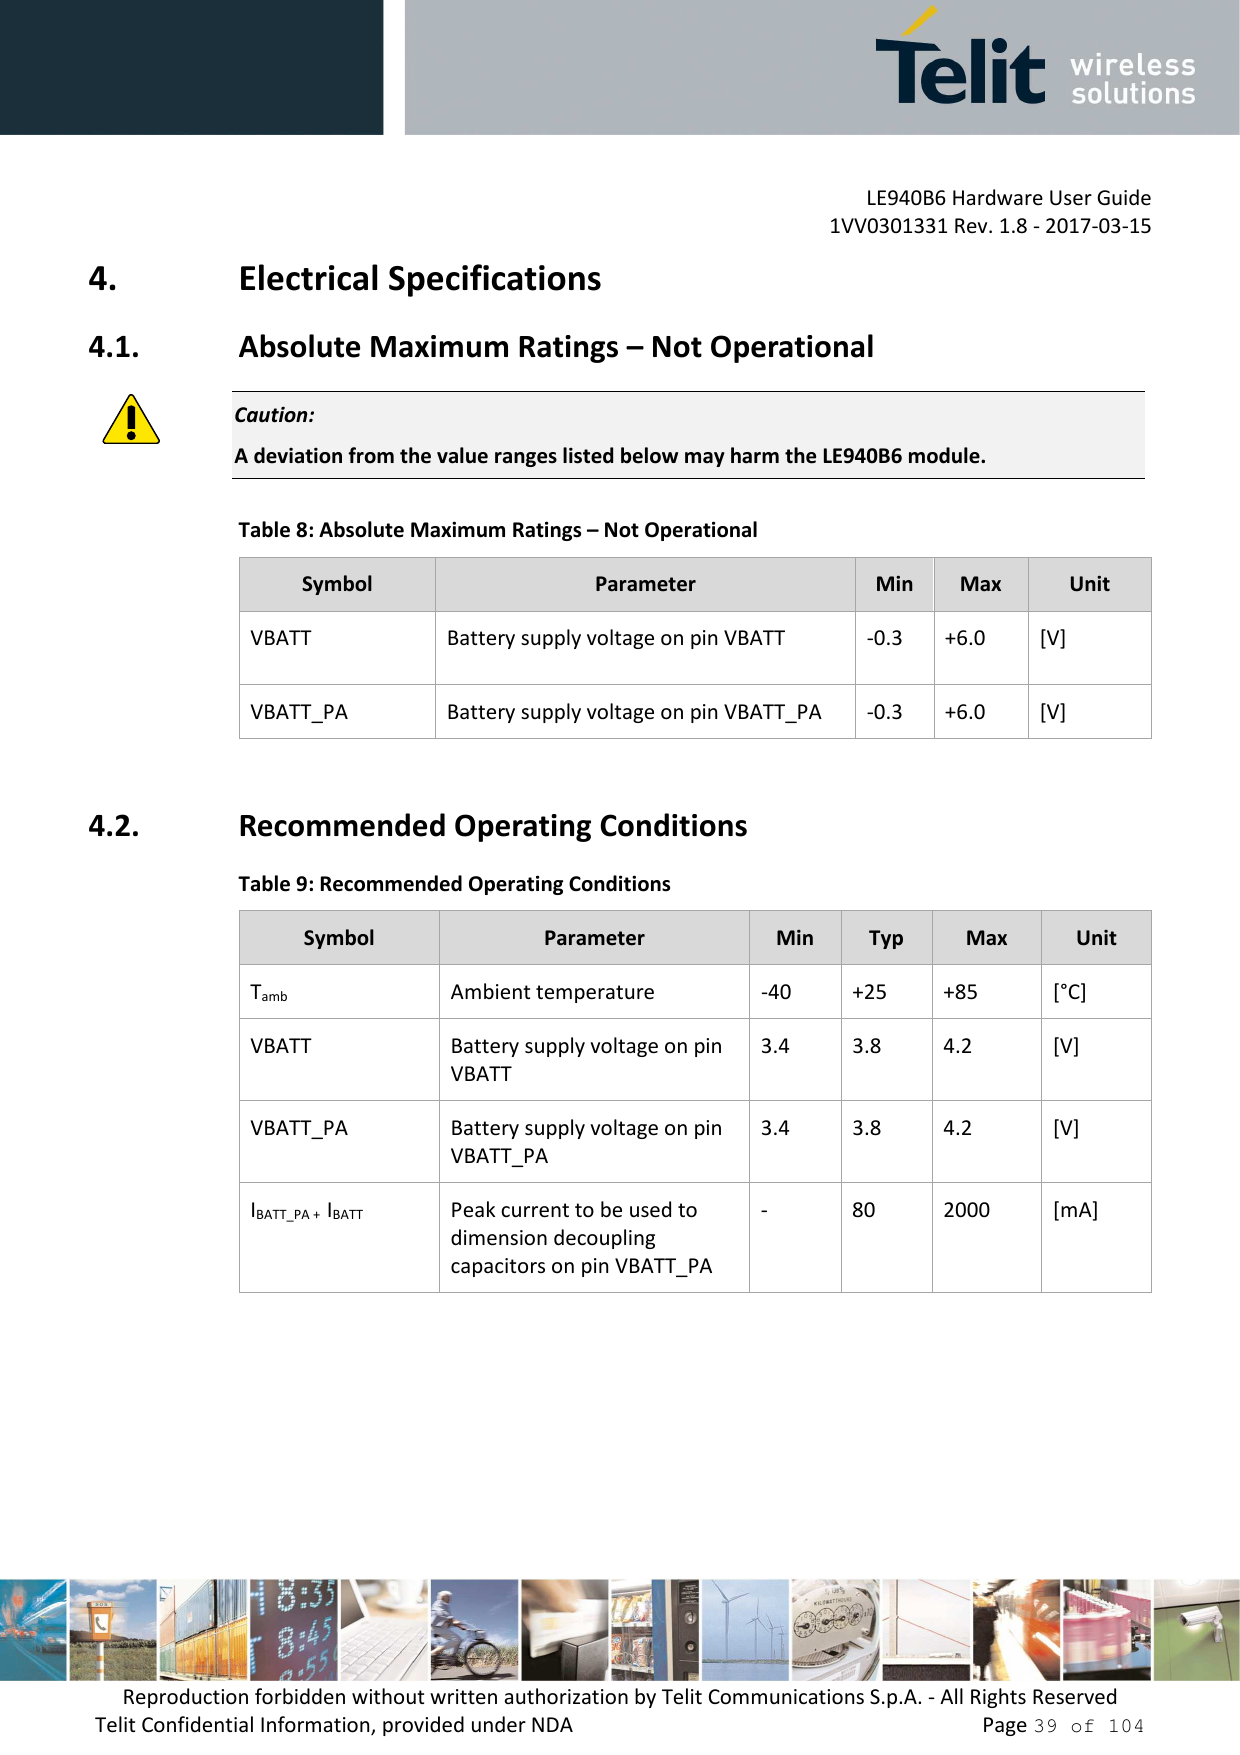 LE940B6 Hardware User Guide     1VV0301331 Rev. 1.8 - 2017-03-15 Reproduction forbidden without written authorization by Telit Communications S.p.A. - All Rights Reserved Telit Confidential Information, provided under NDA                 Page 39 of 104 4. Electrical Specifications 4.1. Absolute Maximum Ratings – Not Operational  Caution: A deviation from the value ranges listed below may harm the LE940B6 module. Table 8: Absolute Maximum Ratings – Not Operational Symbol  Parameter  Min  Max  Unit VBATT  Battery supply voltage on pin VBATT  -0.3  +6.0  [V] VBATT_PA  Battery supply voltage on pin VBATT_PA  -0.3  +6.0  [V]  4.2. Recommended Operating Conditions Table 9: Recommended Operating Conditions Symbol  Parameter  Min  Typ  Max  Unit Tamb  Ambient temperature  -40  +25  +85  [°C] VBATT  Battery supply voltage on pin VBATT 3.4  3.8  4.2  [V] VBATT_PA  Battery supply voltage on pin VBATT_PA 3.4  3.8  4.2  [V] IBATT_PA +  IBATT  Peak current to be used to dimension decoupling capacitors on pin VBATT_PA -  80  2000  [mA]